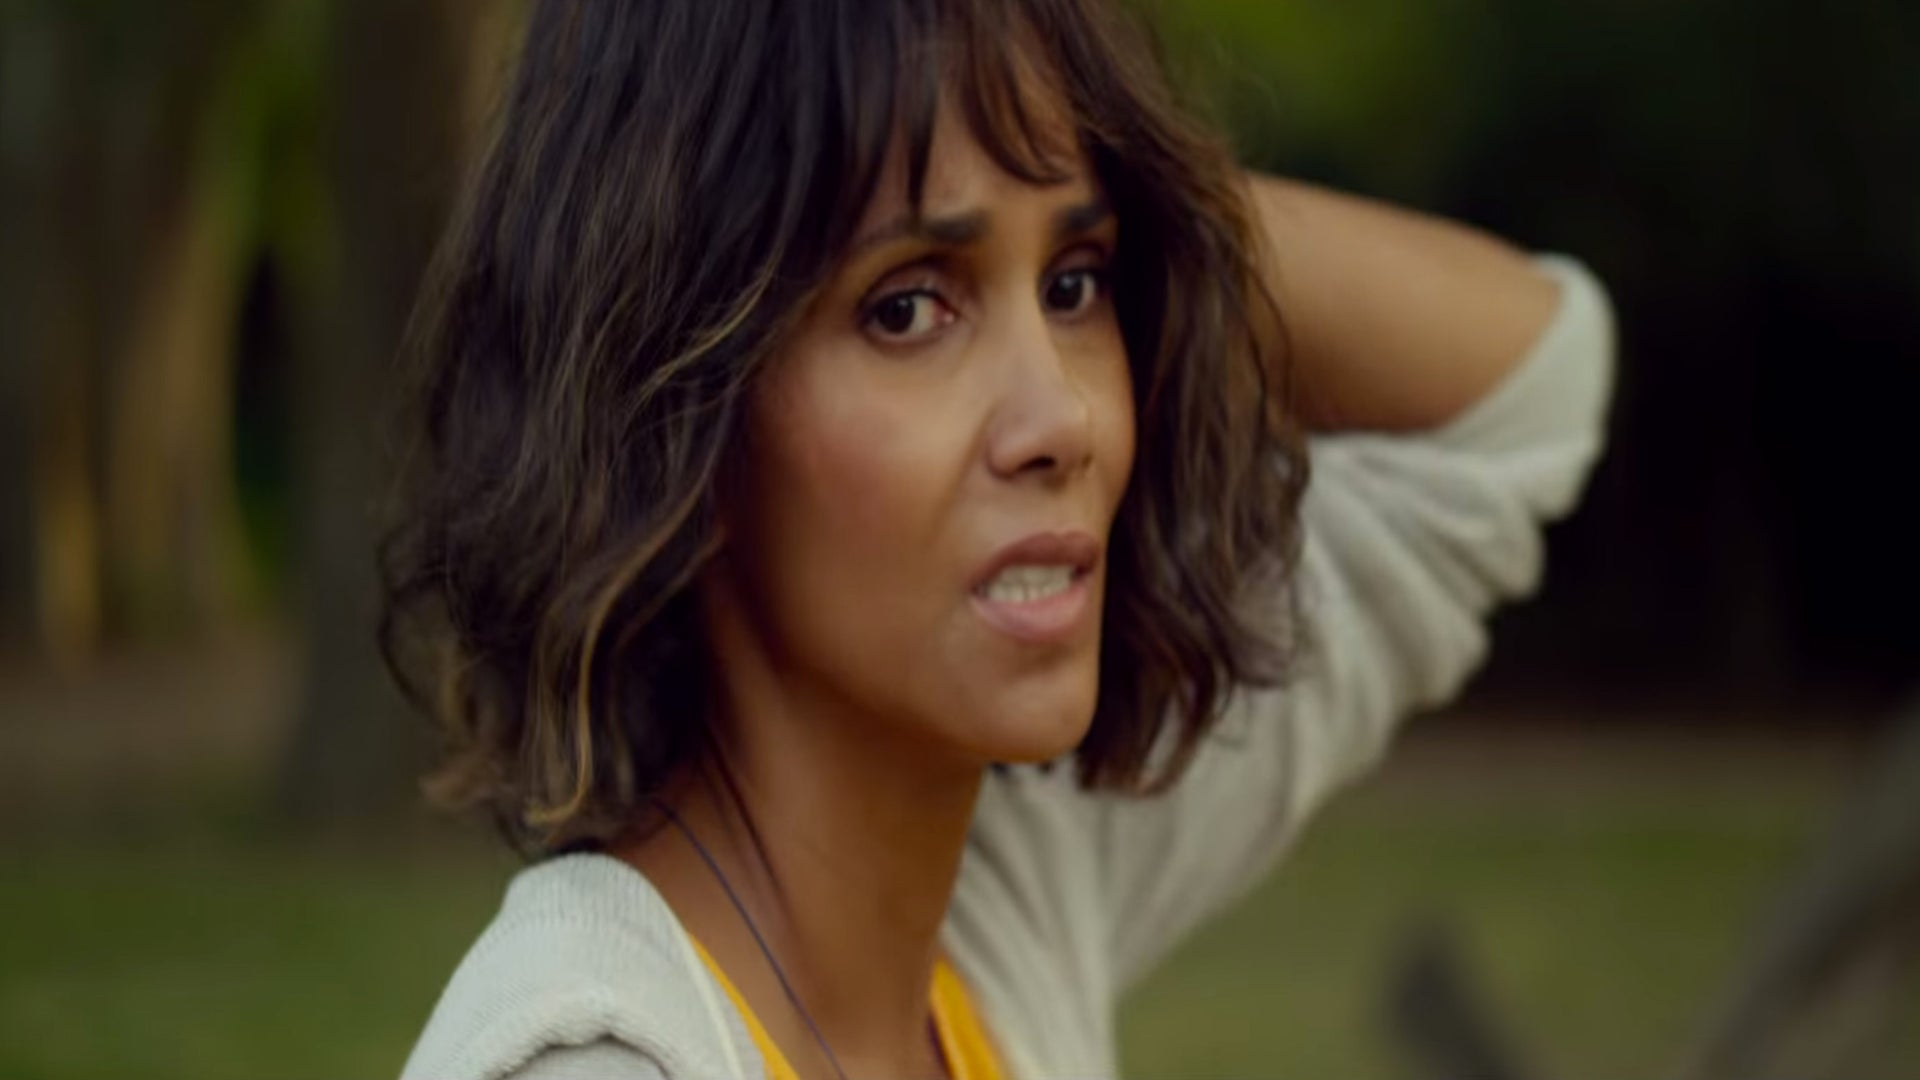 Halle Berry Is A Mother Who Will Stop At Nothing To Bring Her Child Home In New Movie 'Kidnap'